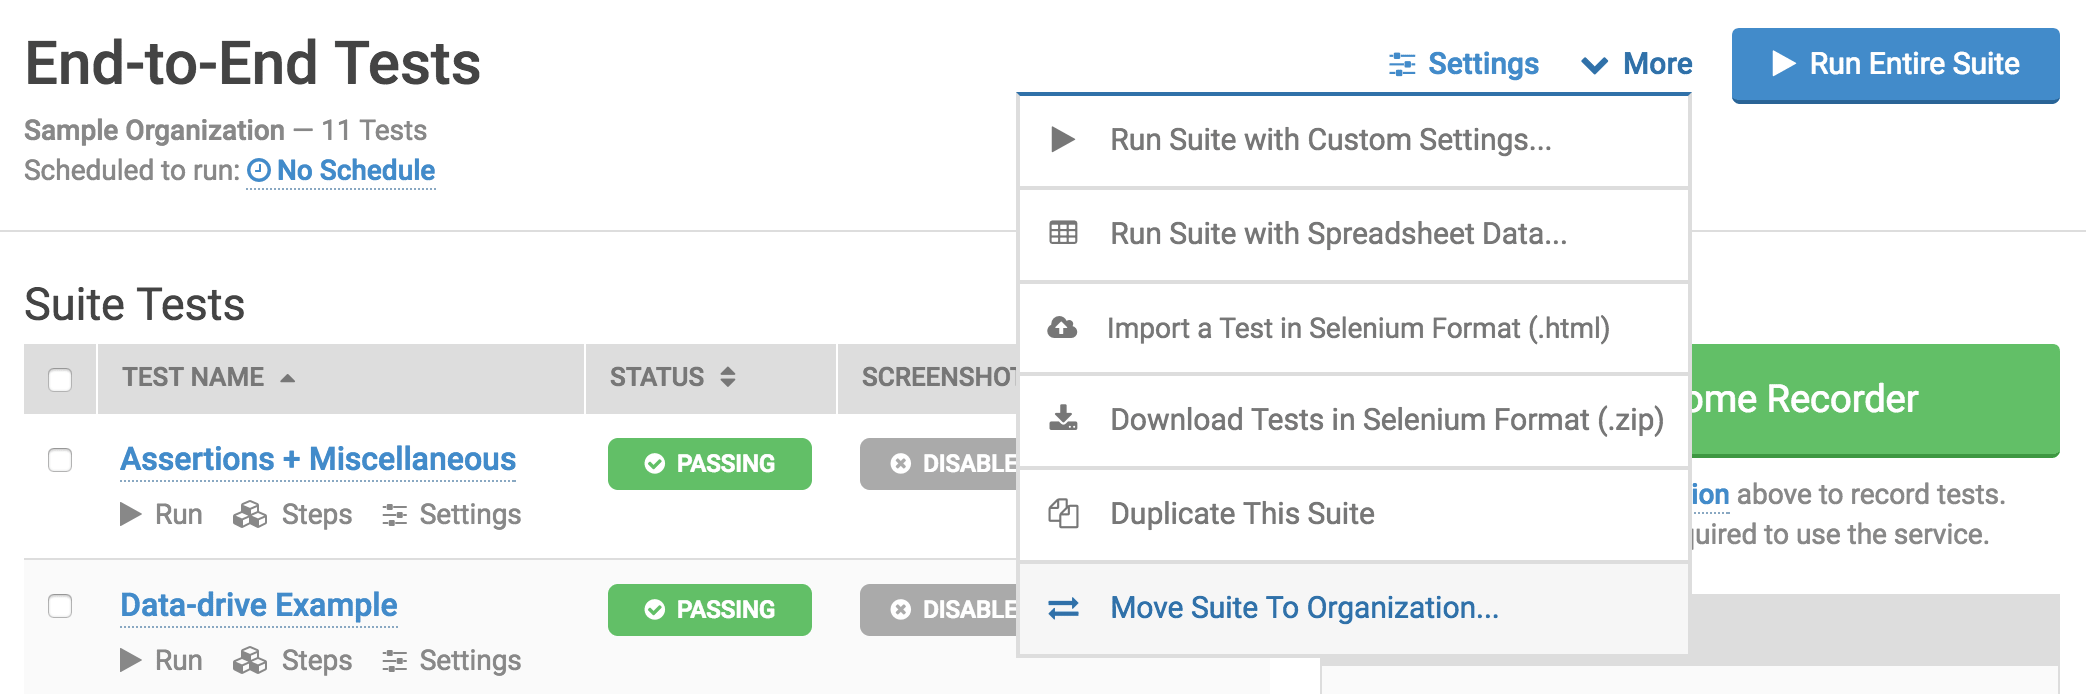 Move suite to another organization